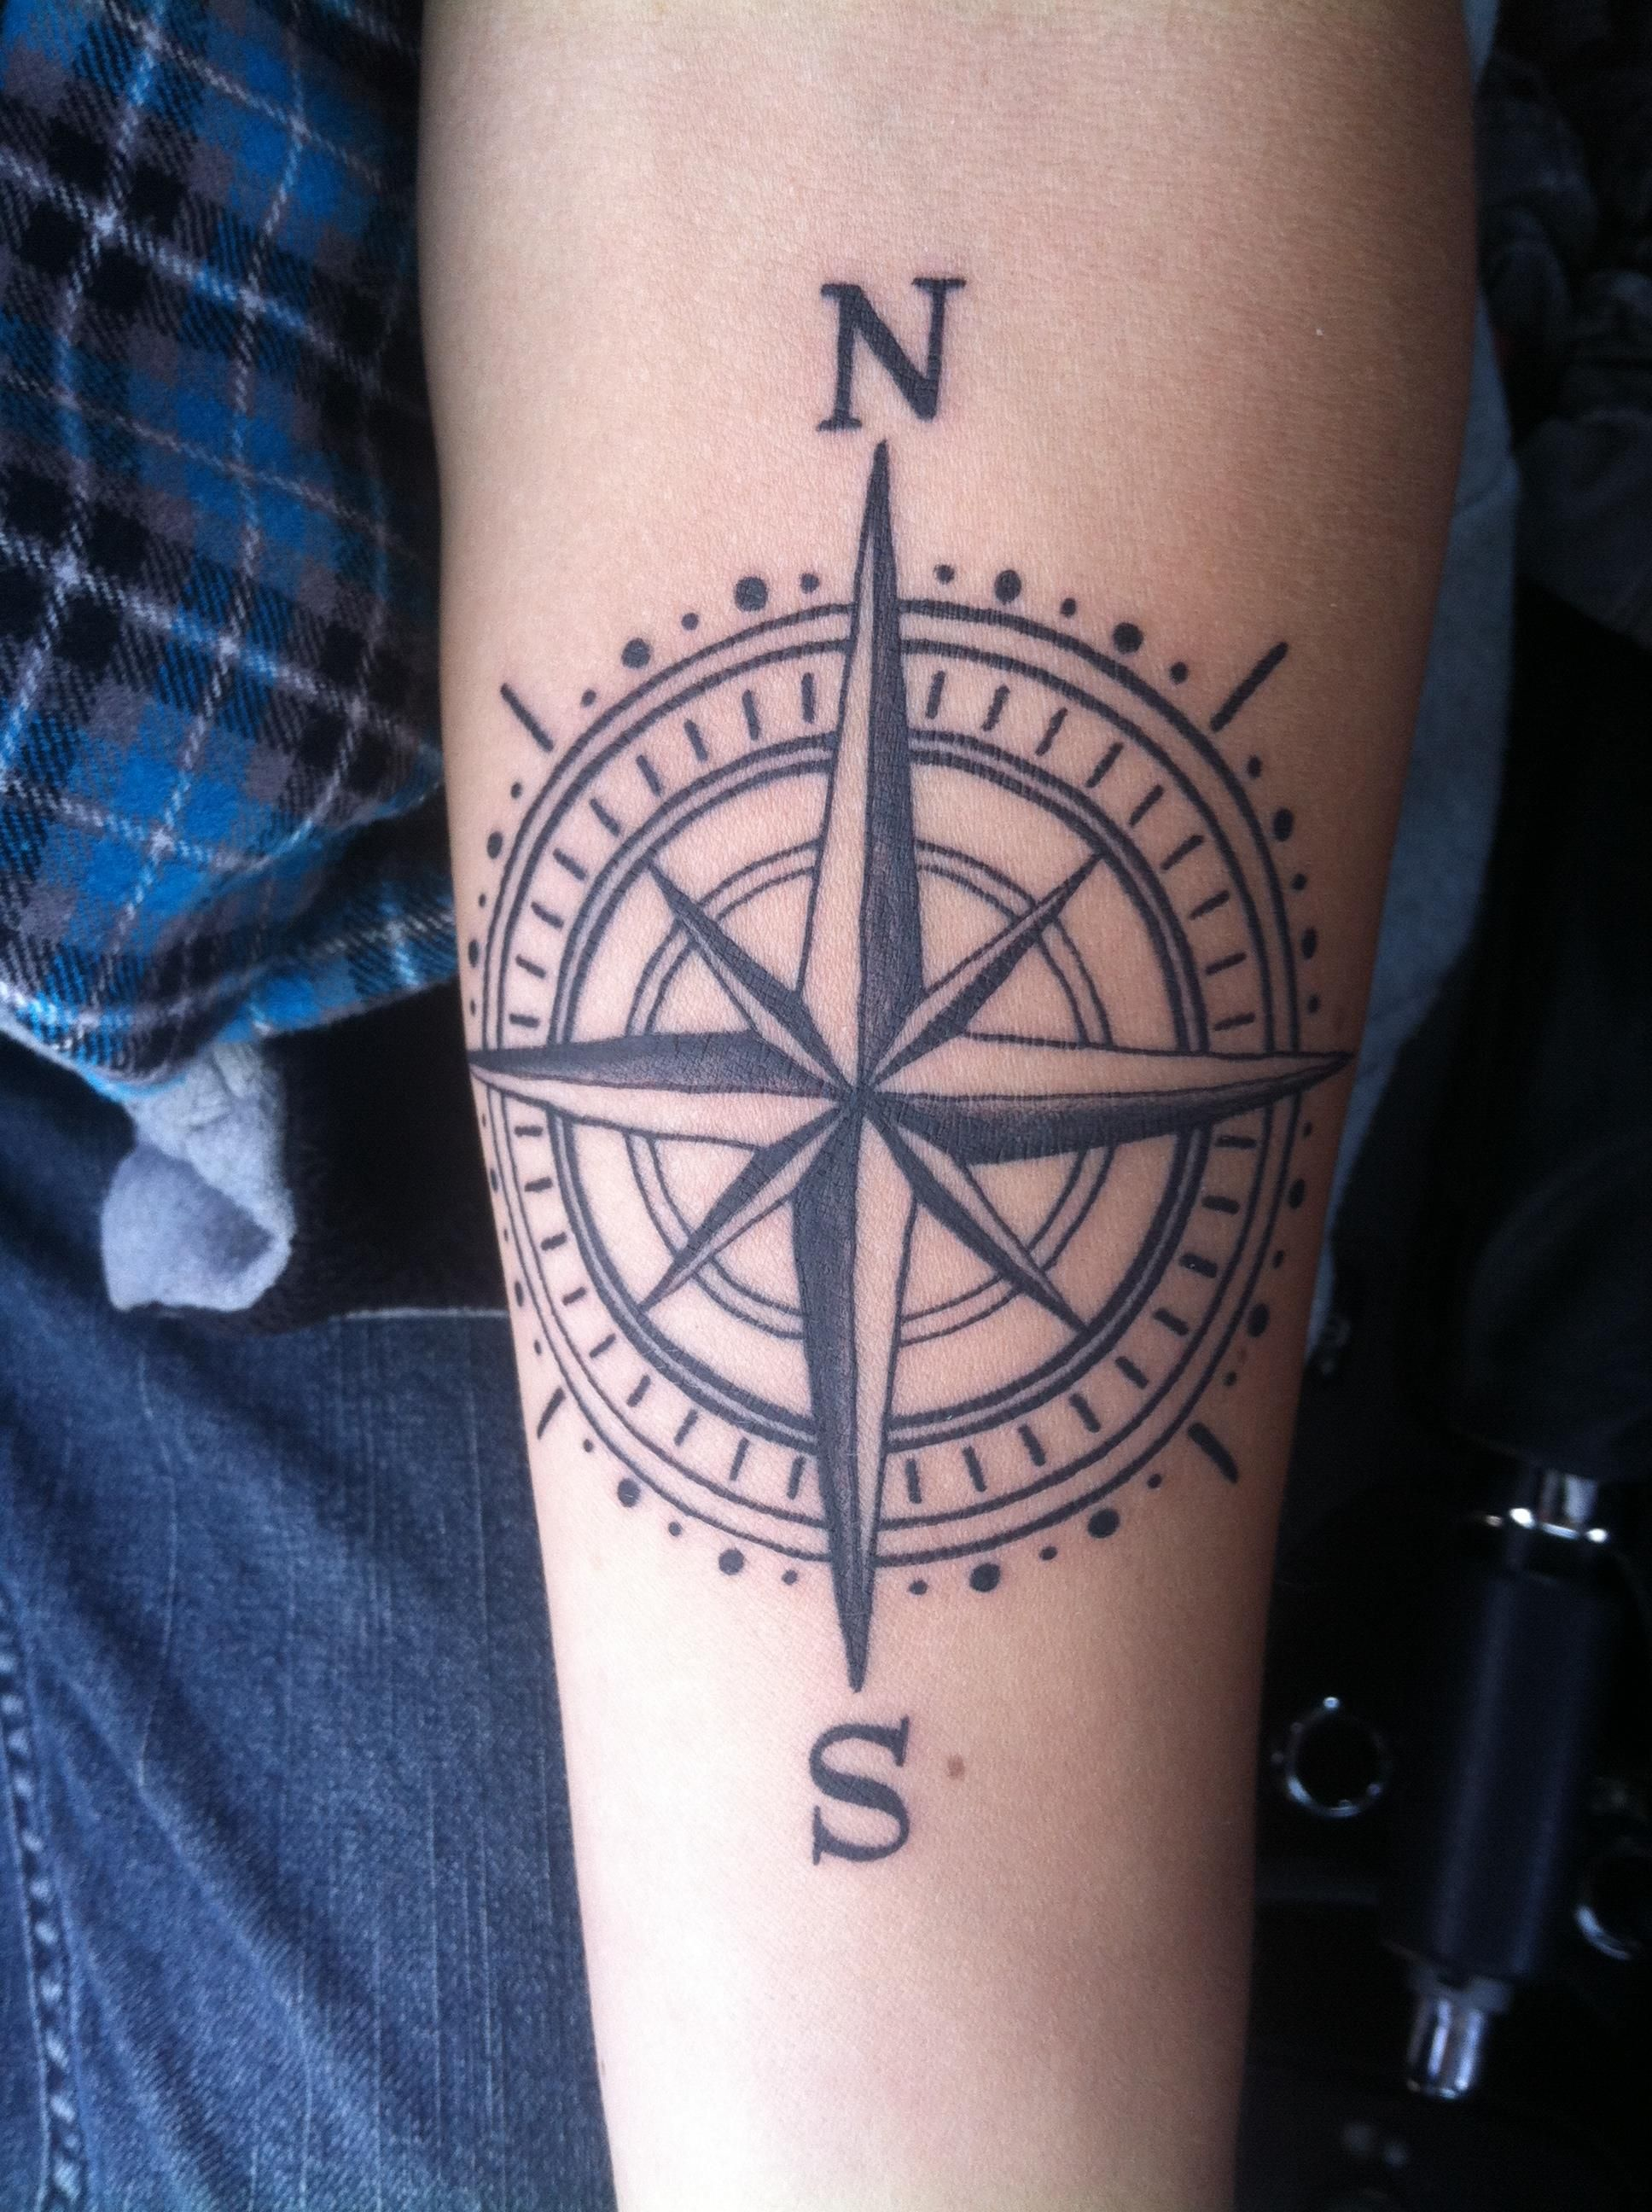 Forearm Compass Tattoo I Did Thanks For Lookin Wip